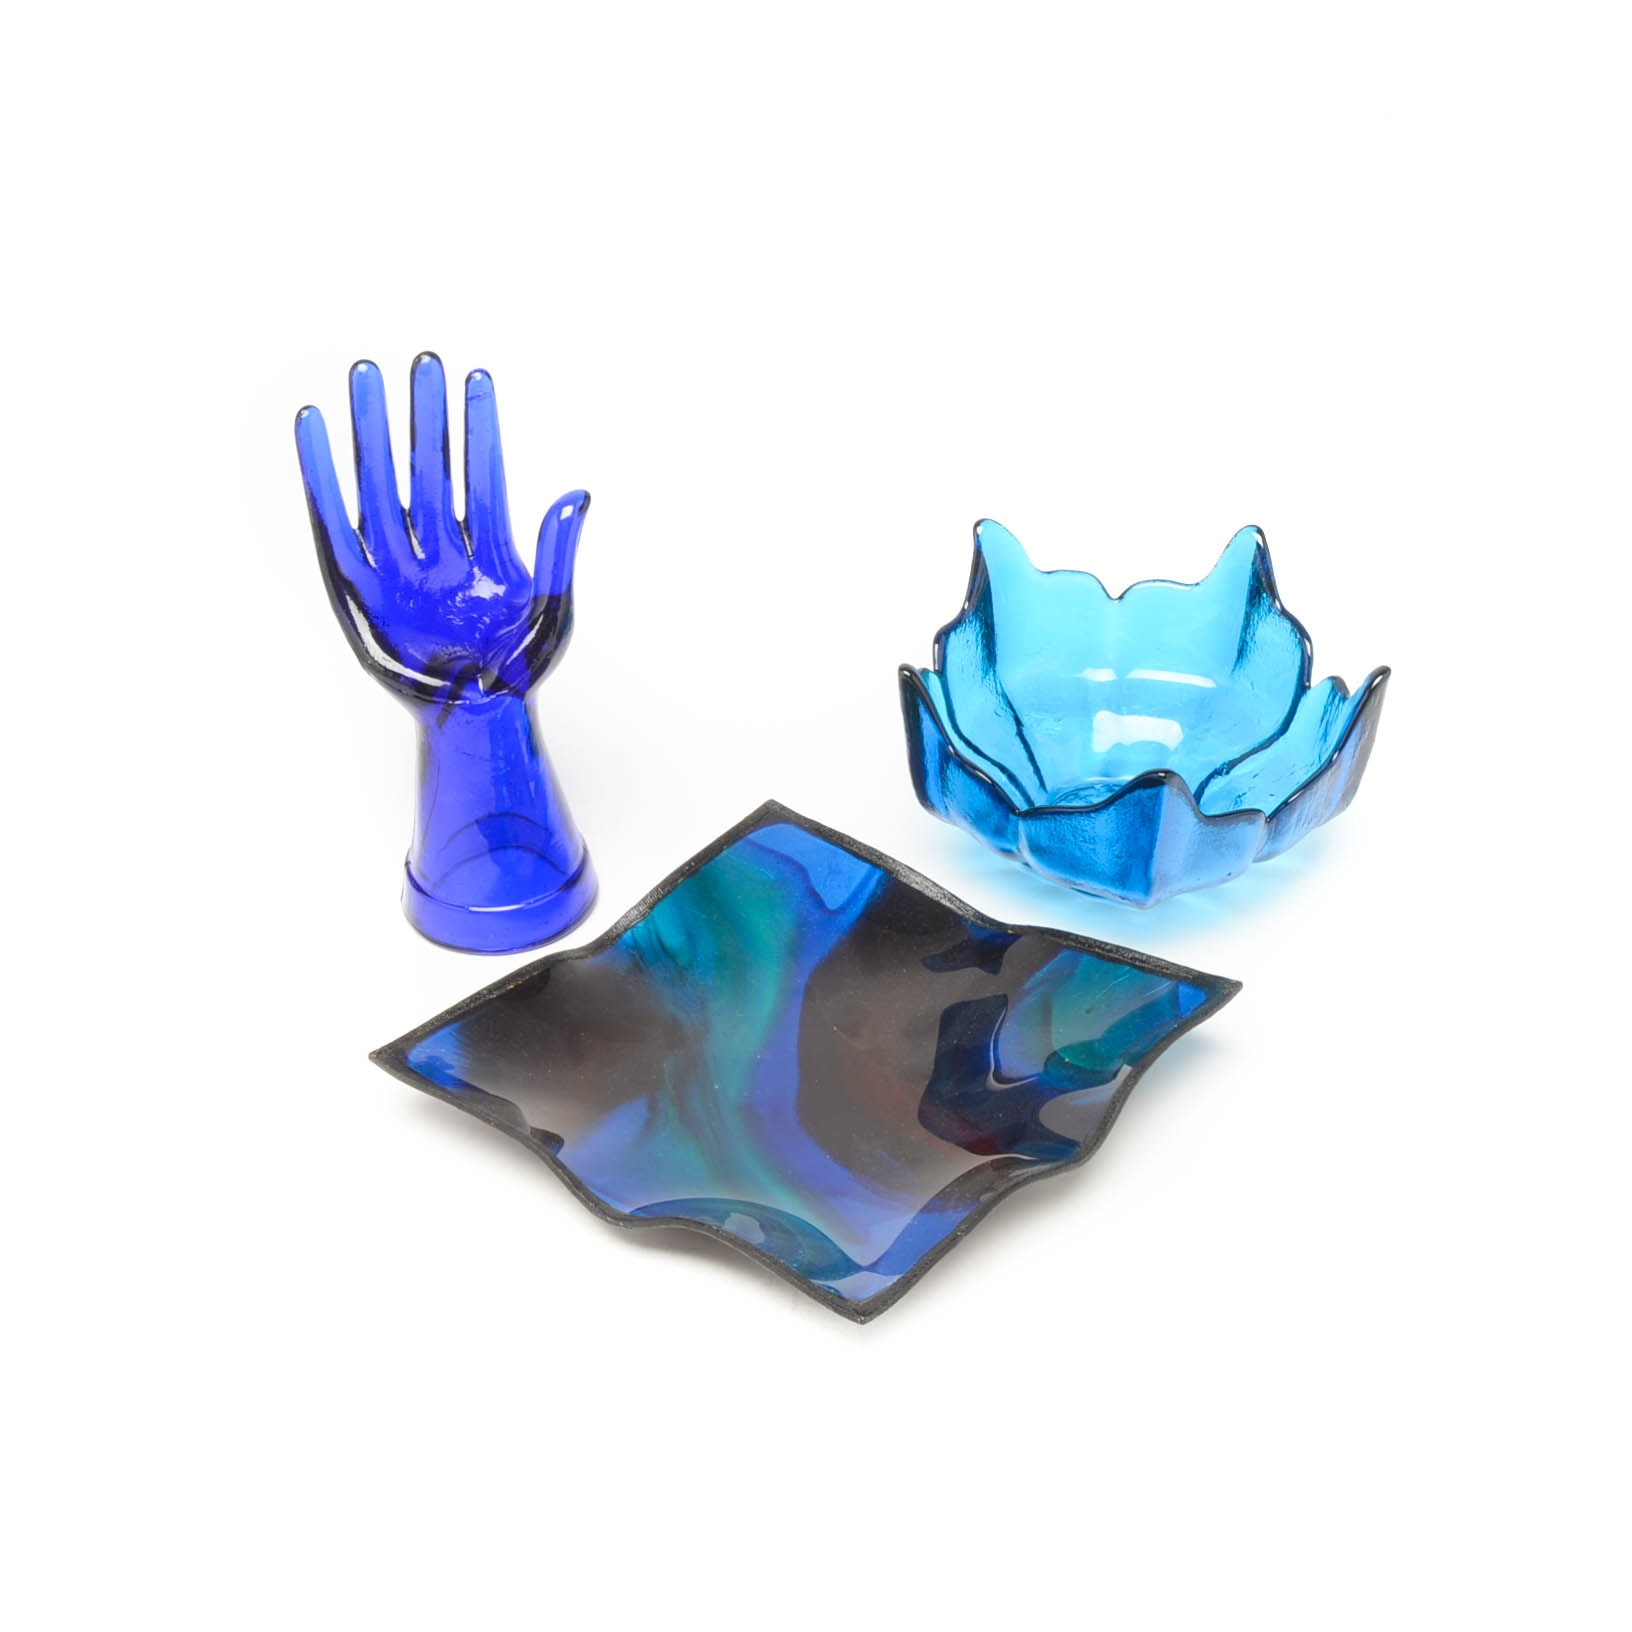 Tejas Deco Art Glass Tray with a Cobalt Blue Bowl and Hand